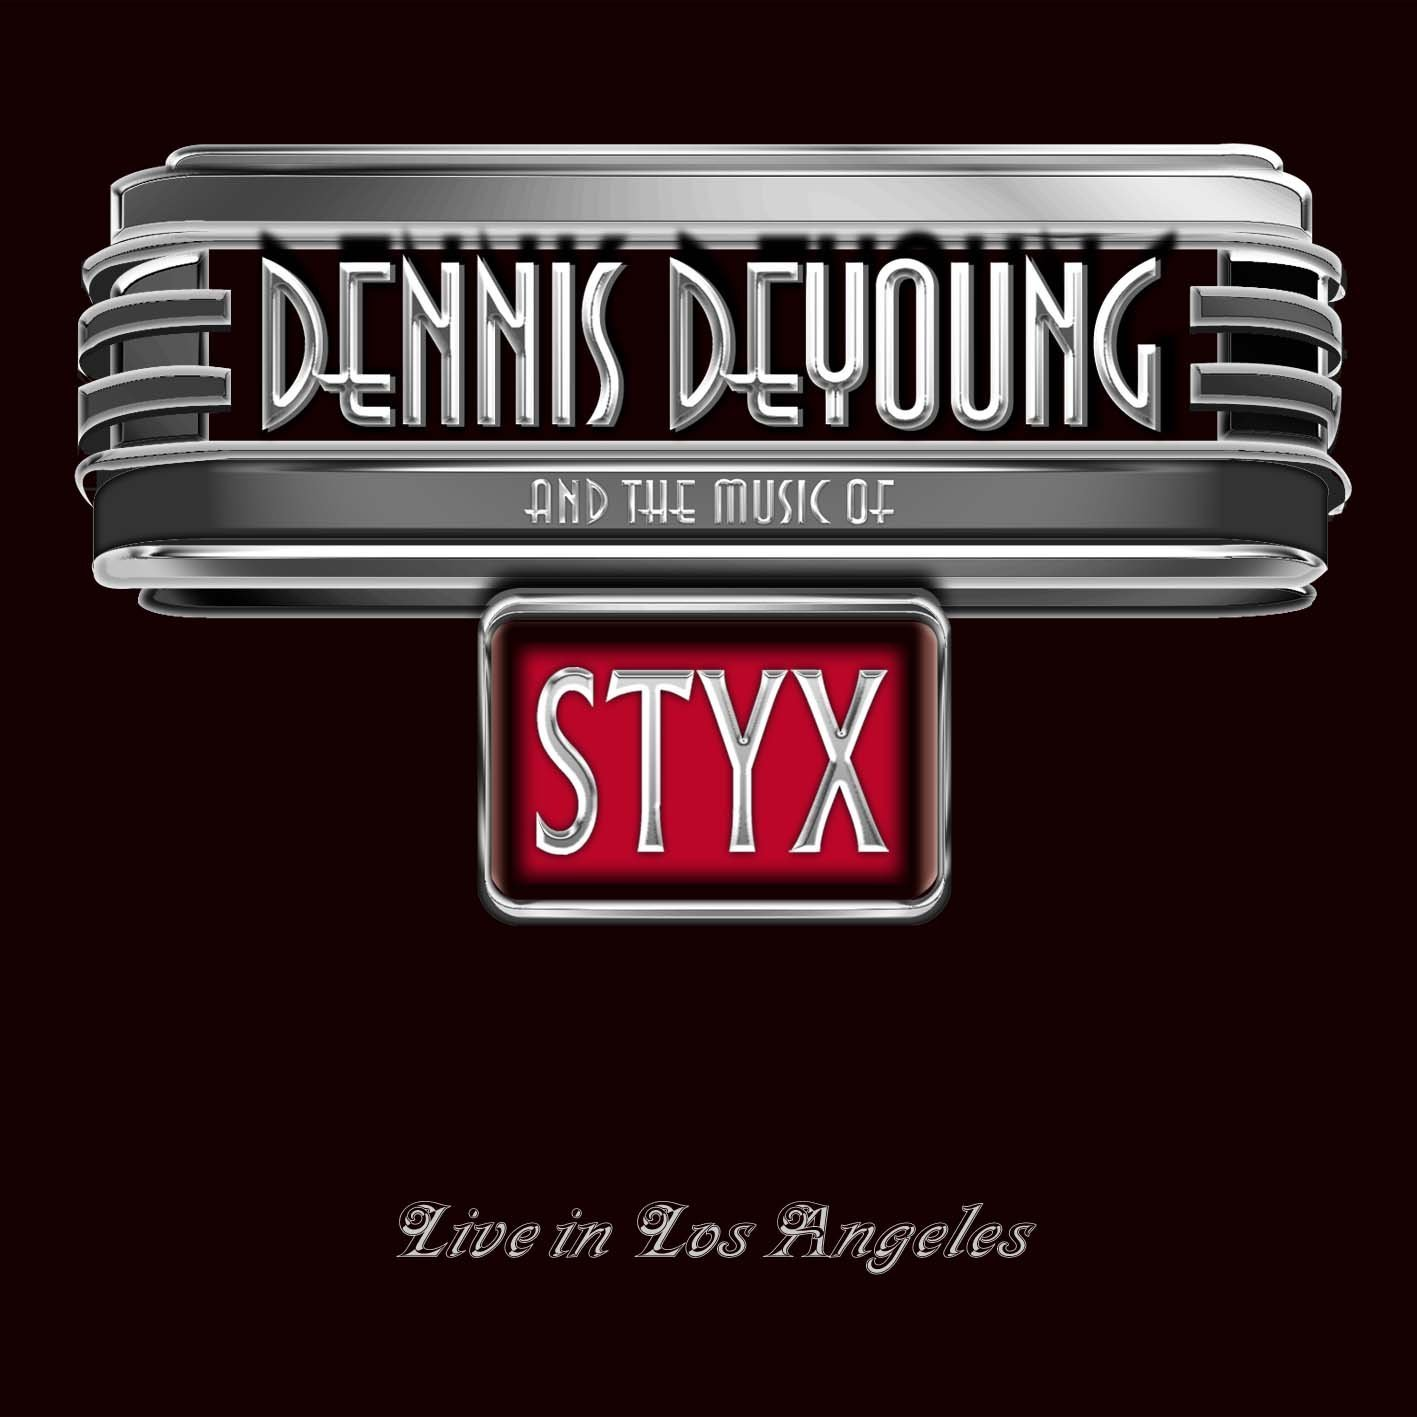 Denns DeYoung and the Music of Styx Live in Los Angeles